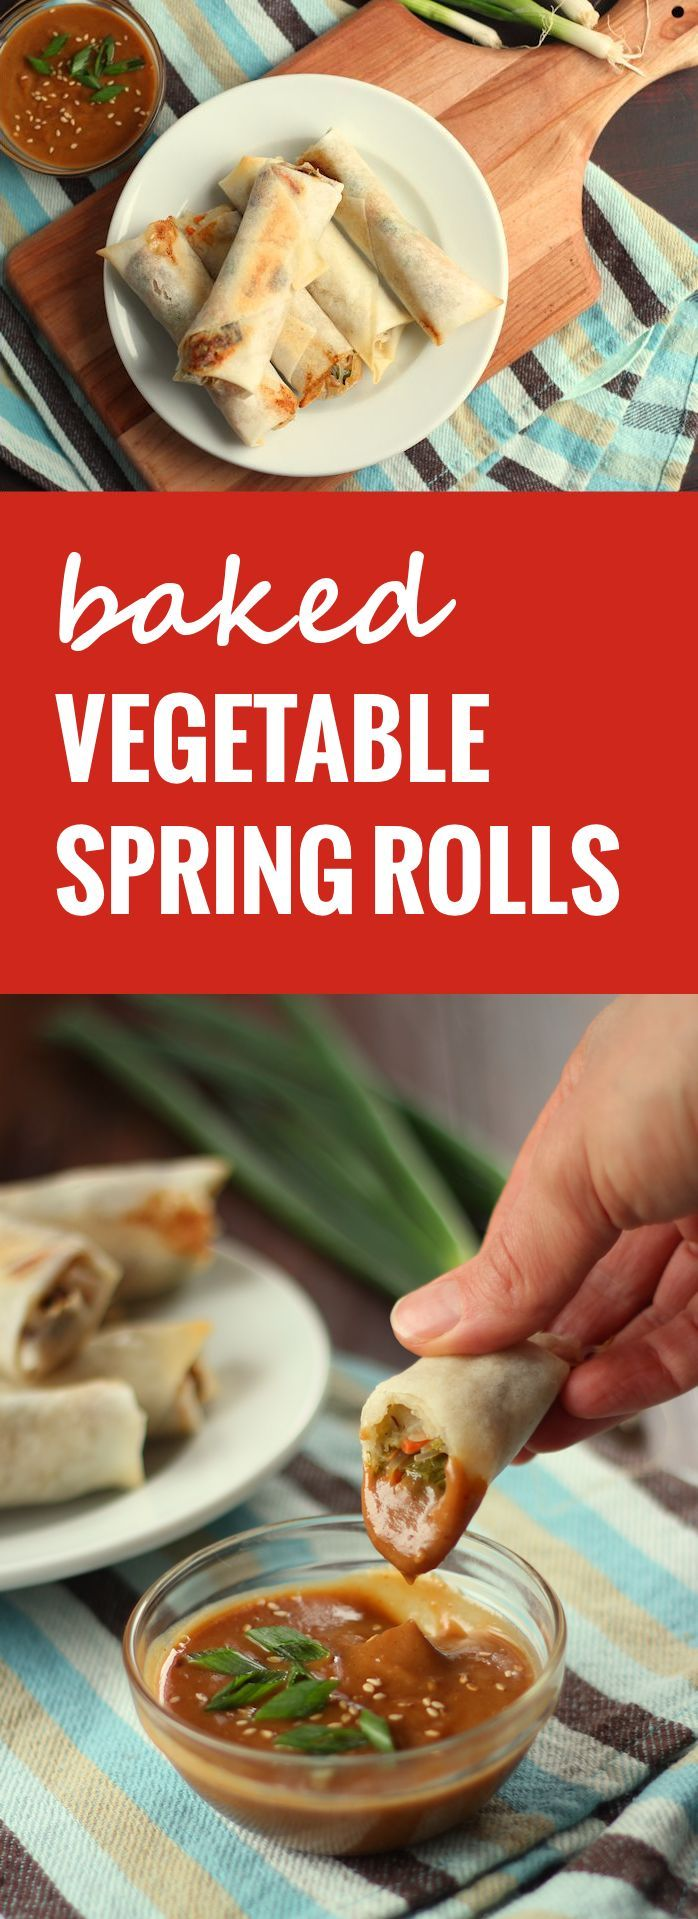 These baked vegetable spring rolls are stuffed with a mixture of rice noodles and savory stir-fried veggies.